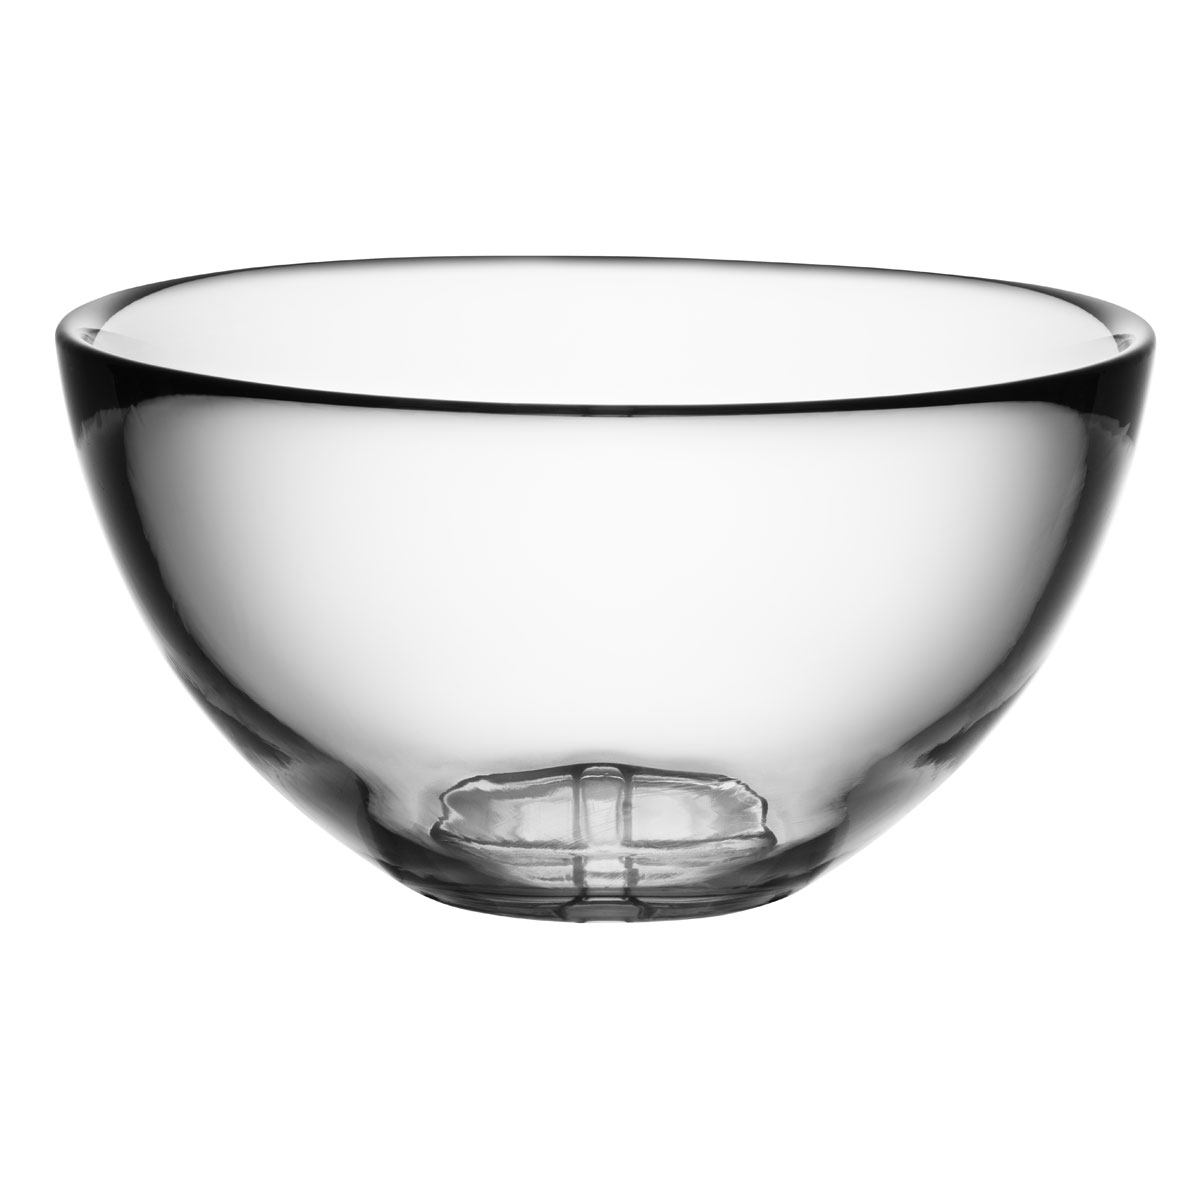 Kosta Boda Bruk Crystal Large Serving Bowl, Clear